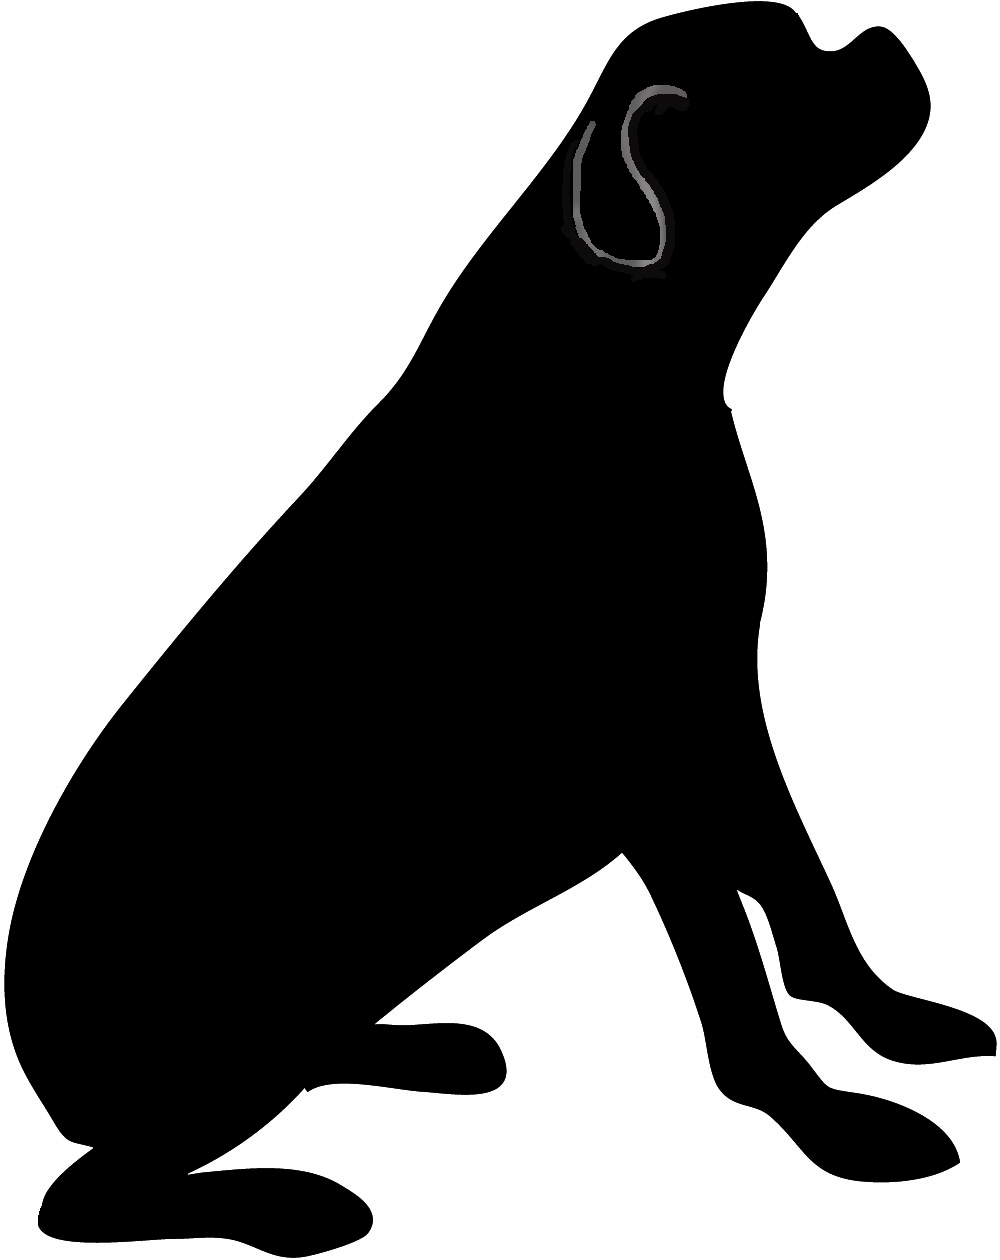 rottweiler png black and white transparent rottweiler black and rh pluspng com rottweiler clipart black and white Black and White Cartoon Bulldog